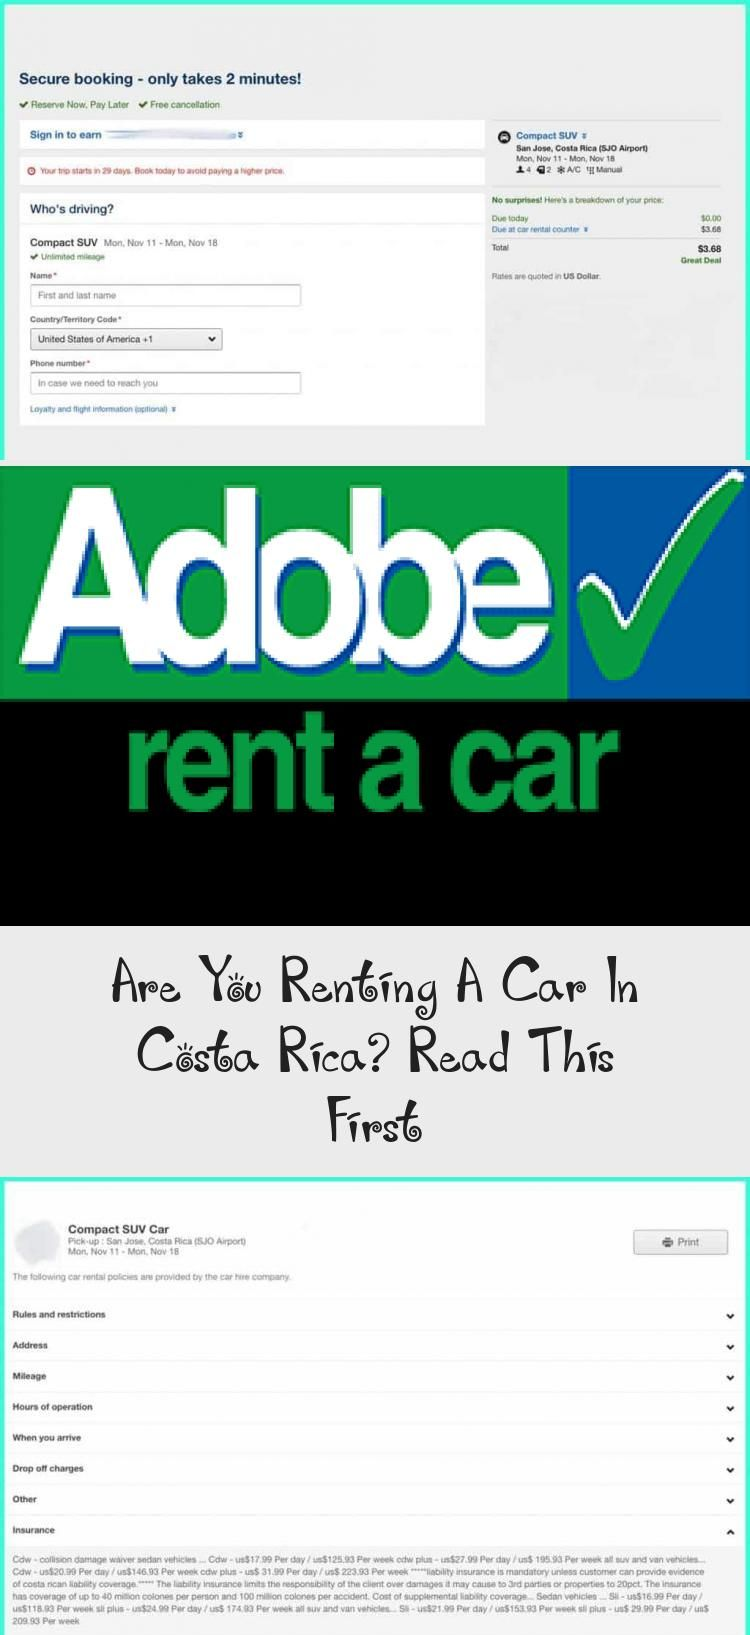 Are You Renting A Car In Costa Rica? Read This First